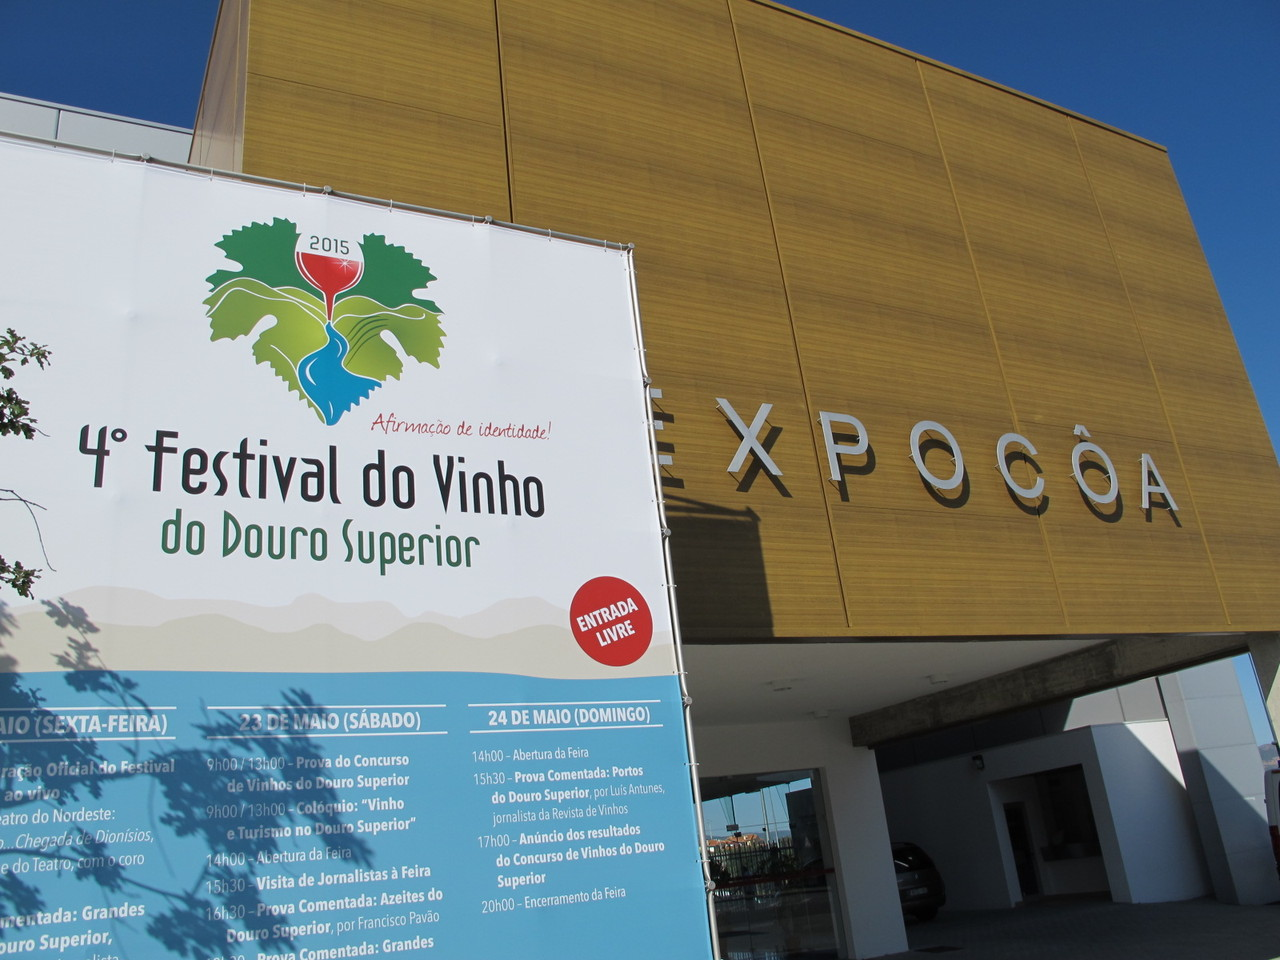 Festival do Vinho do Douro Superior